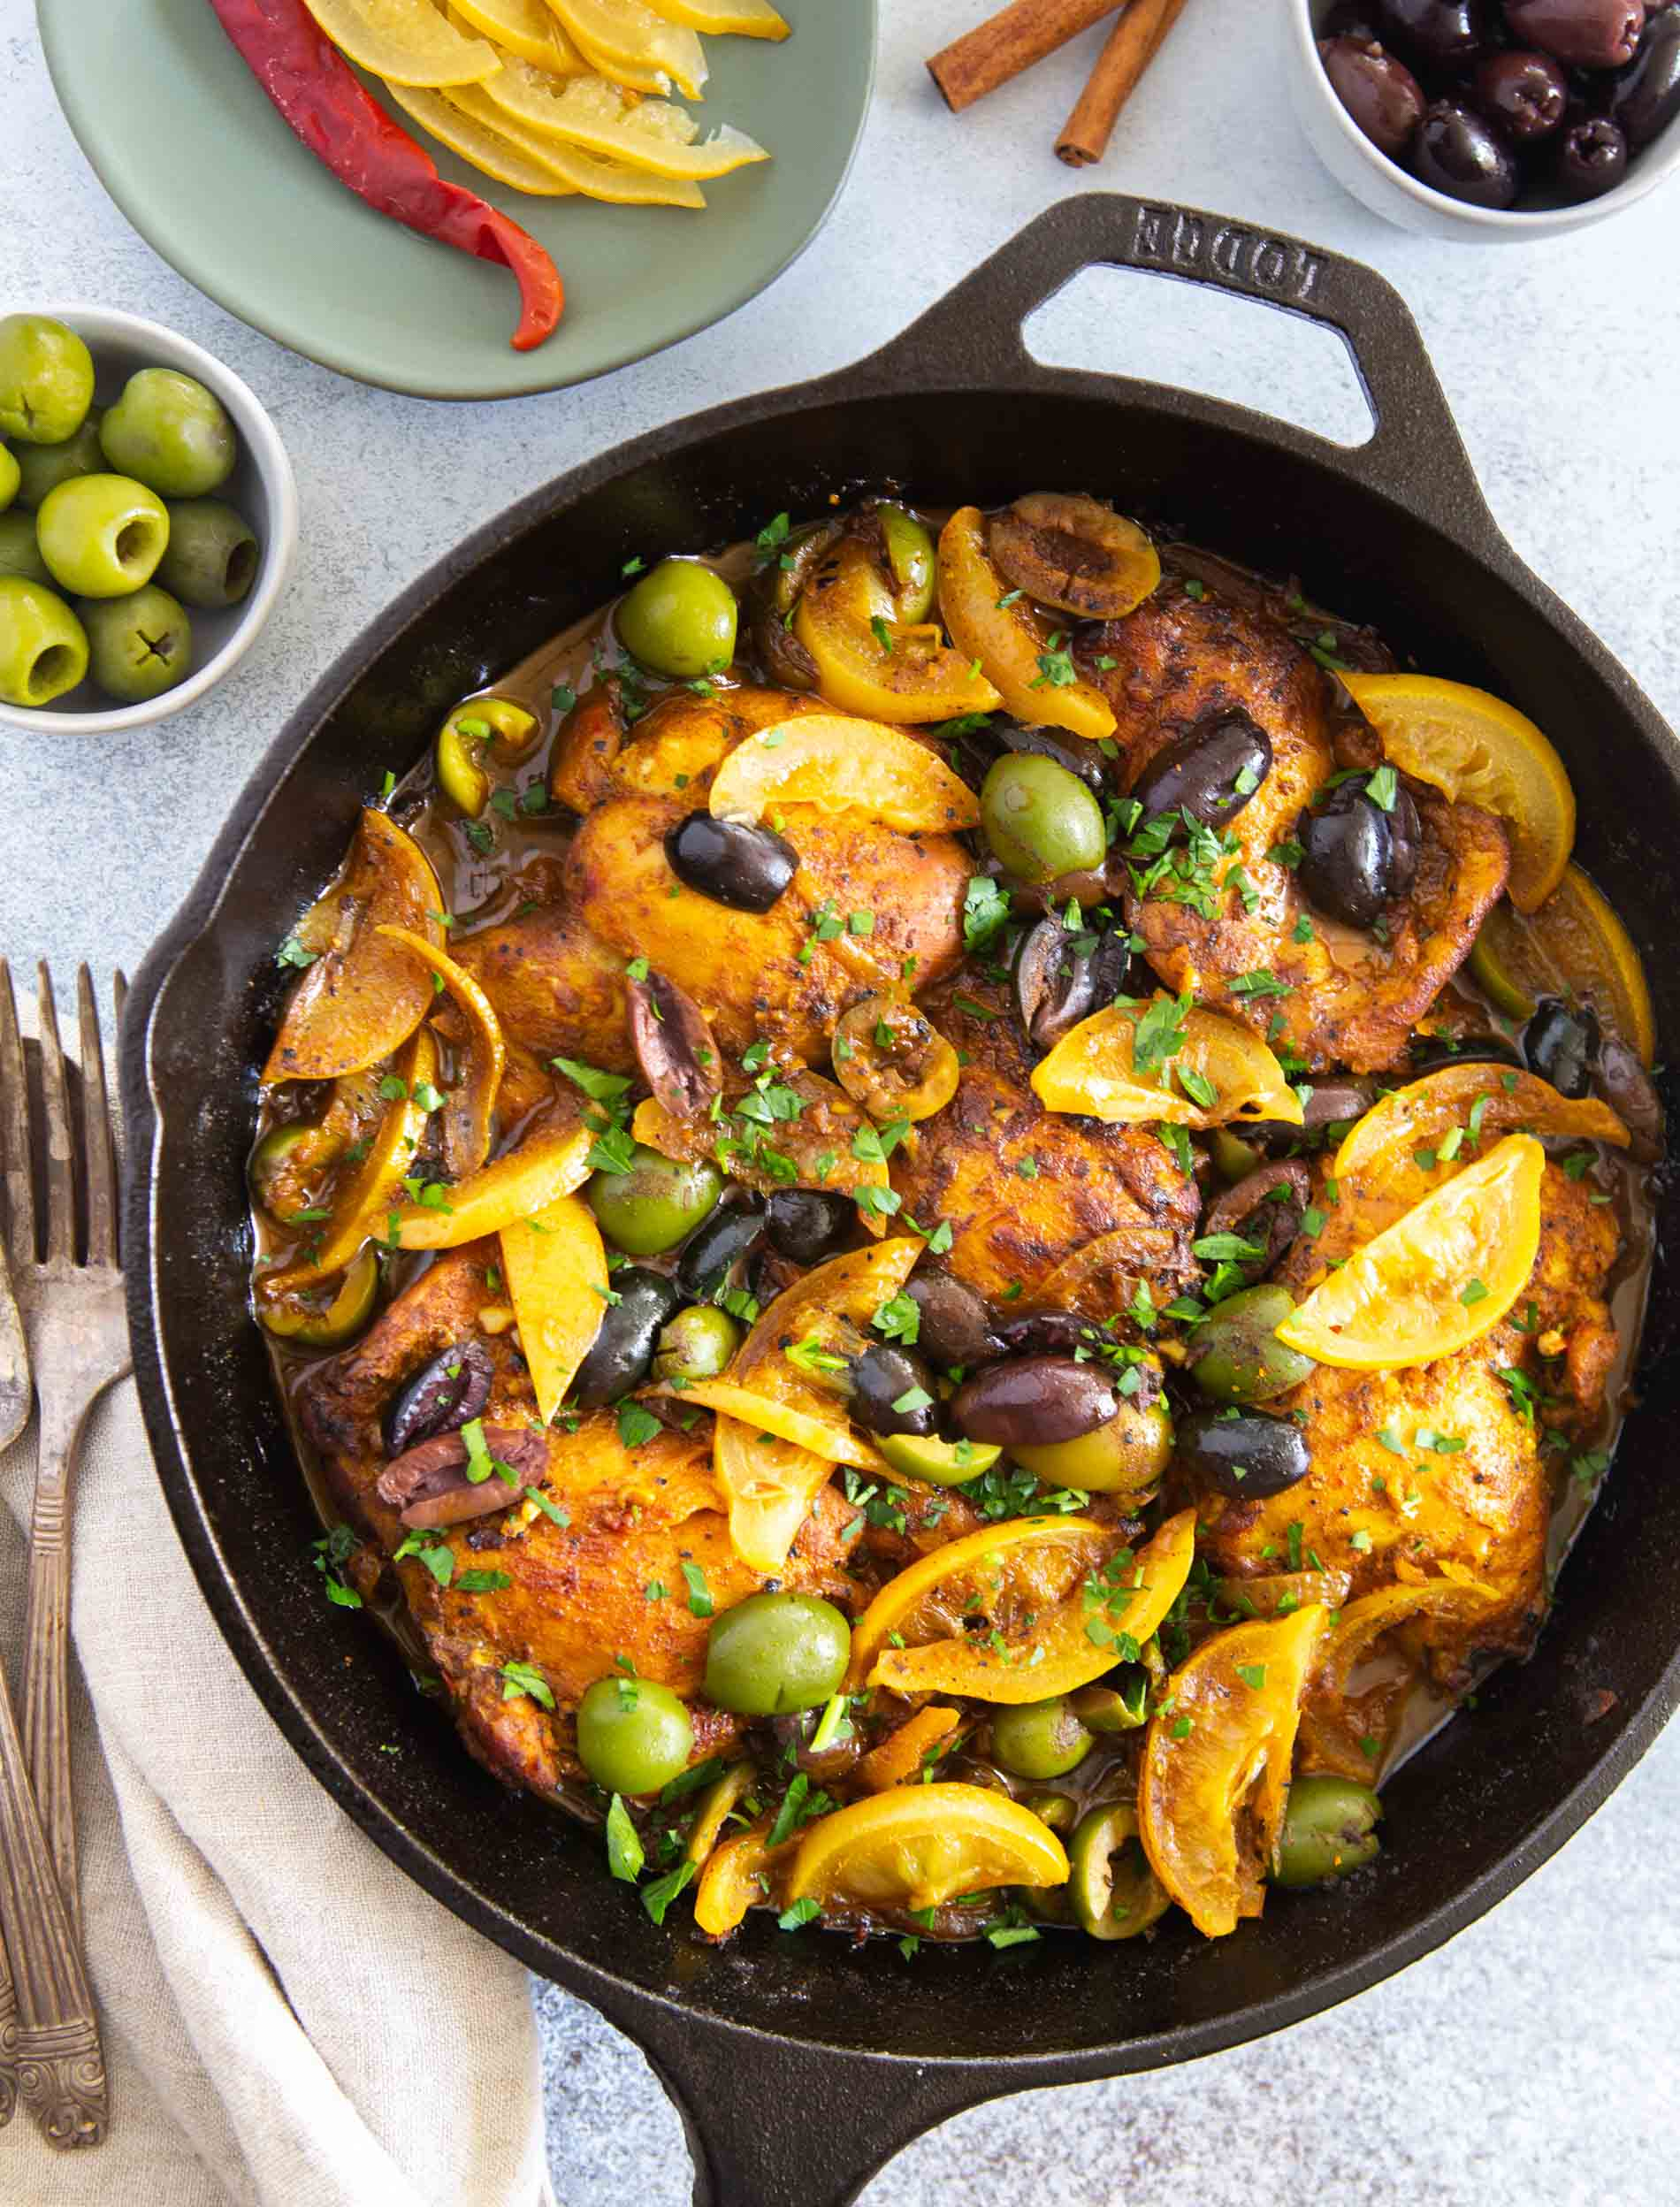 The incredible flavors of Moroccan cuisine embody this Moroccan chicken tagine skillet. Its complex and bold flavors will have you going back for seconds!